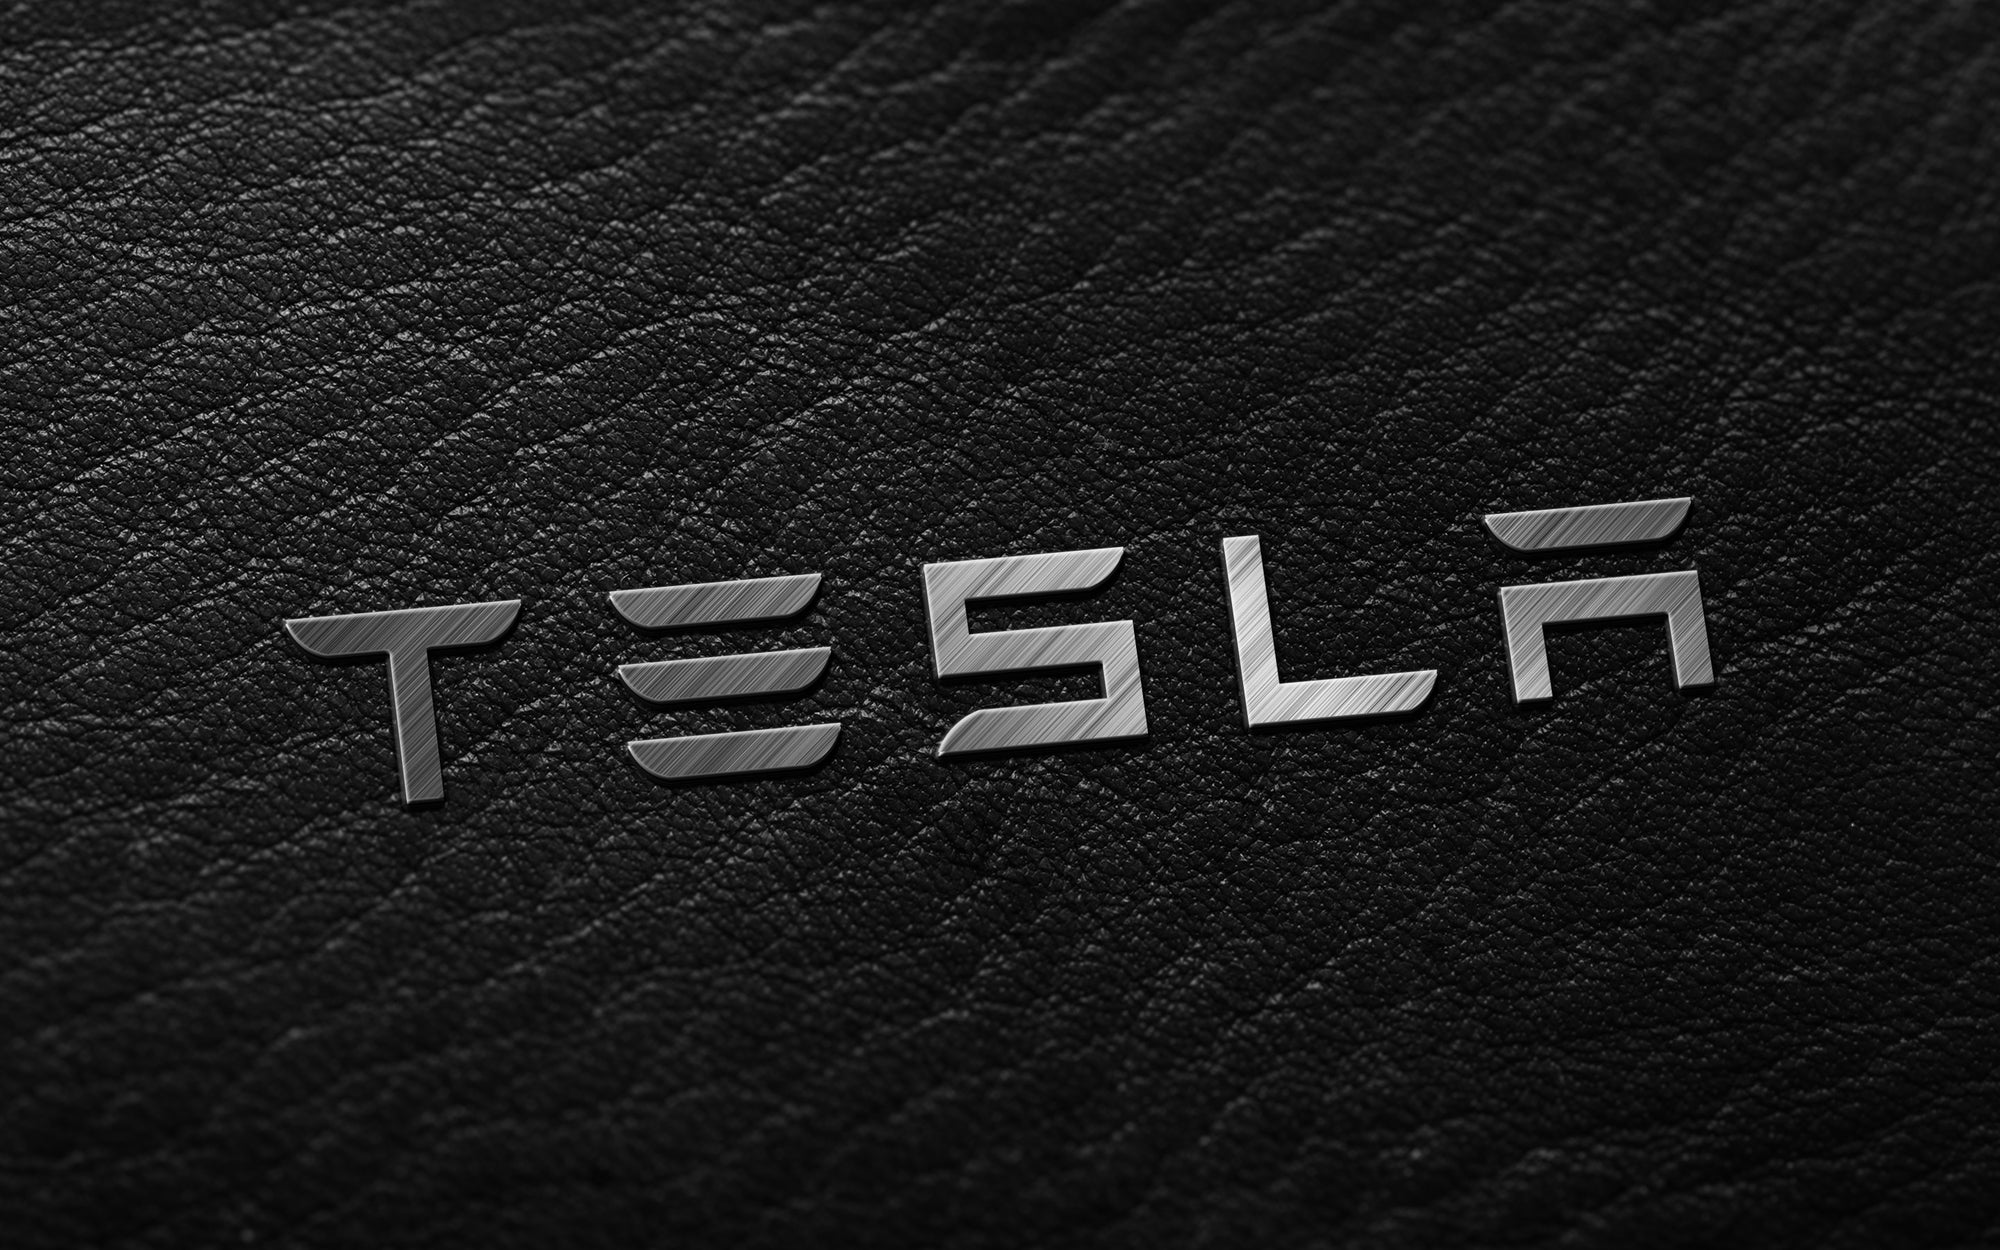 Wedbush Raises Tesla TSLA Price Target From $600 To $800